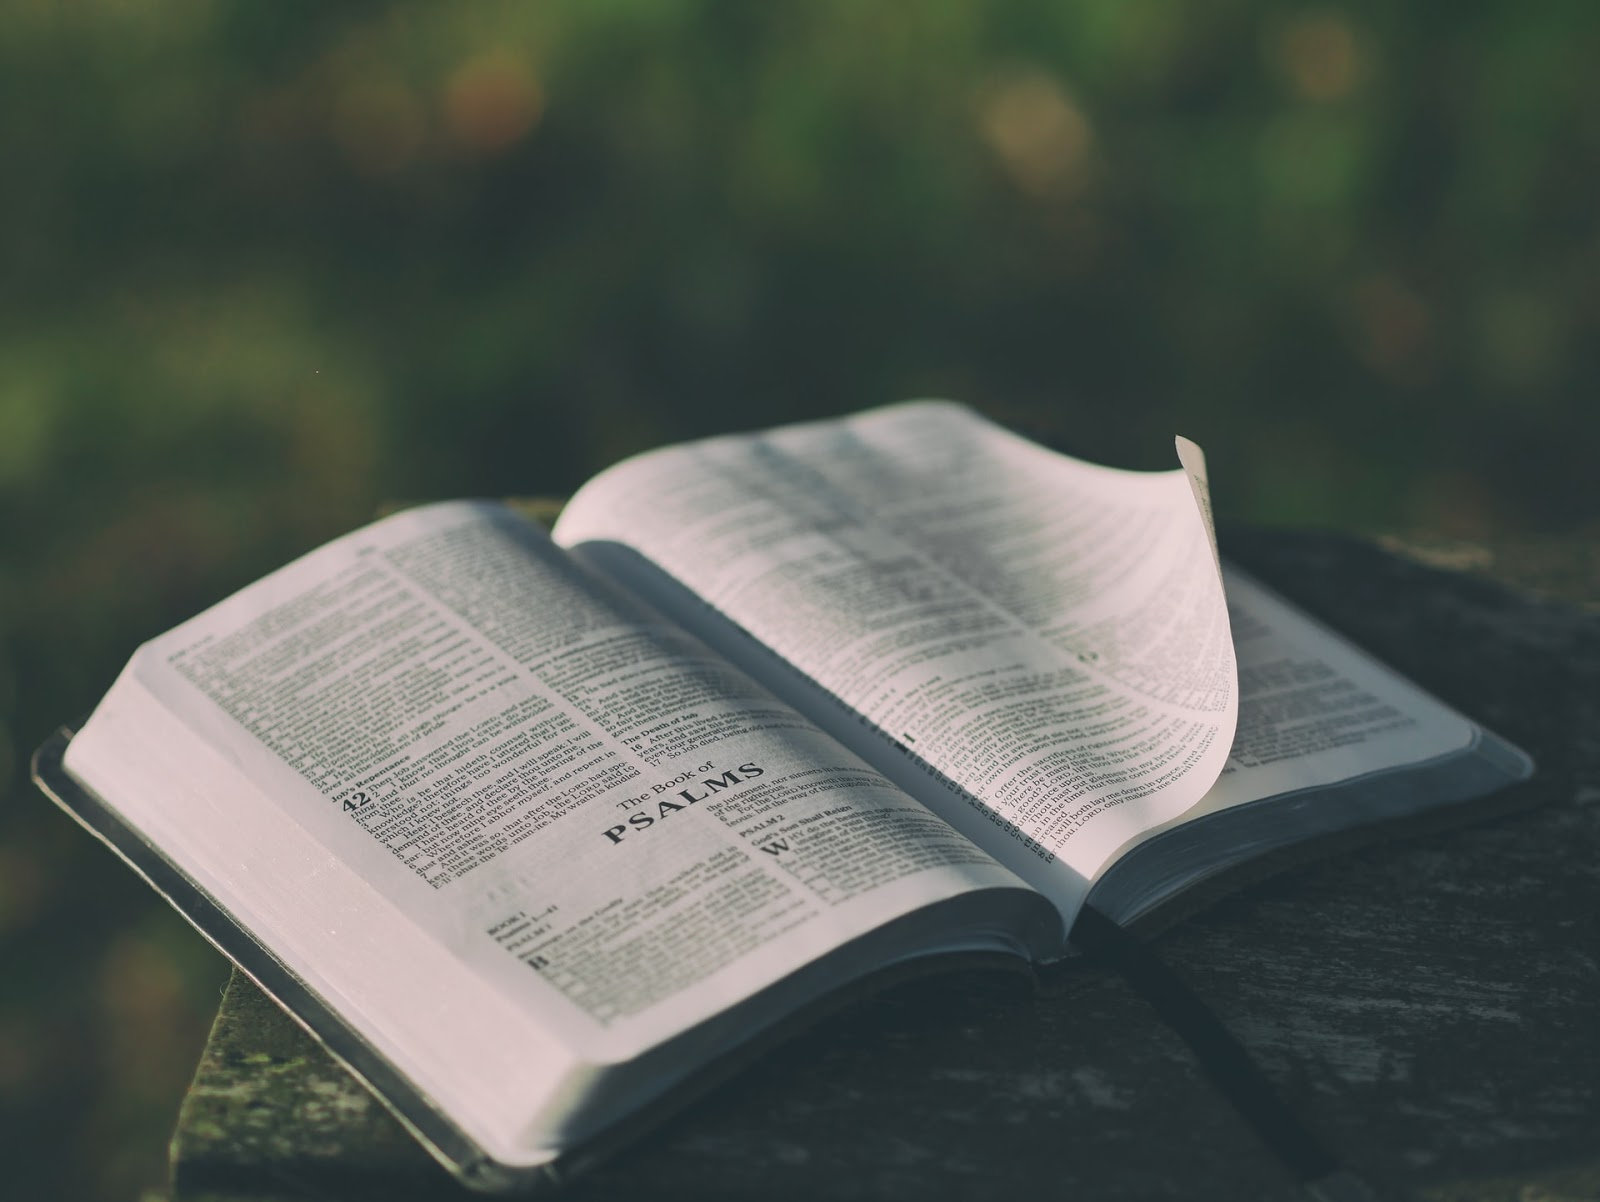 a Bible open to the book of Psalms